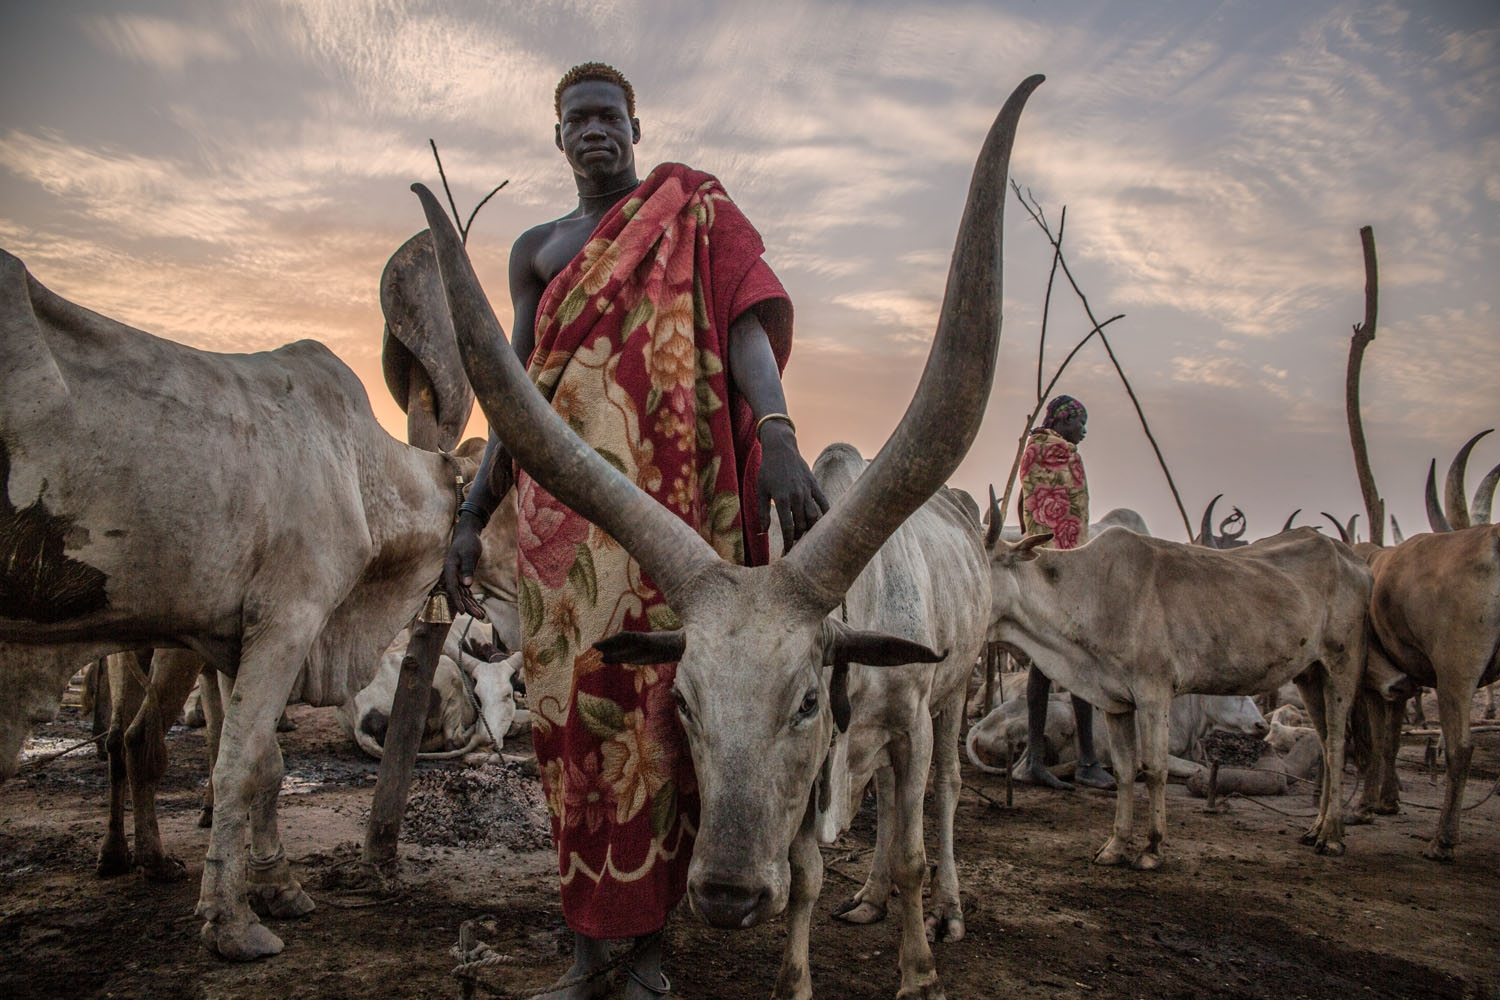 A Sudanese man from Dinka tribe poses between cows in the early morning at their cattle camp in Mingkaman, Lakes State, South Sudan on March 4, 2018.